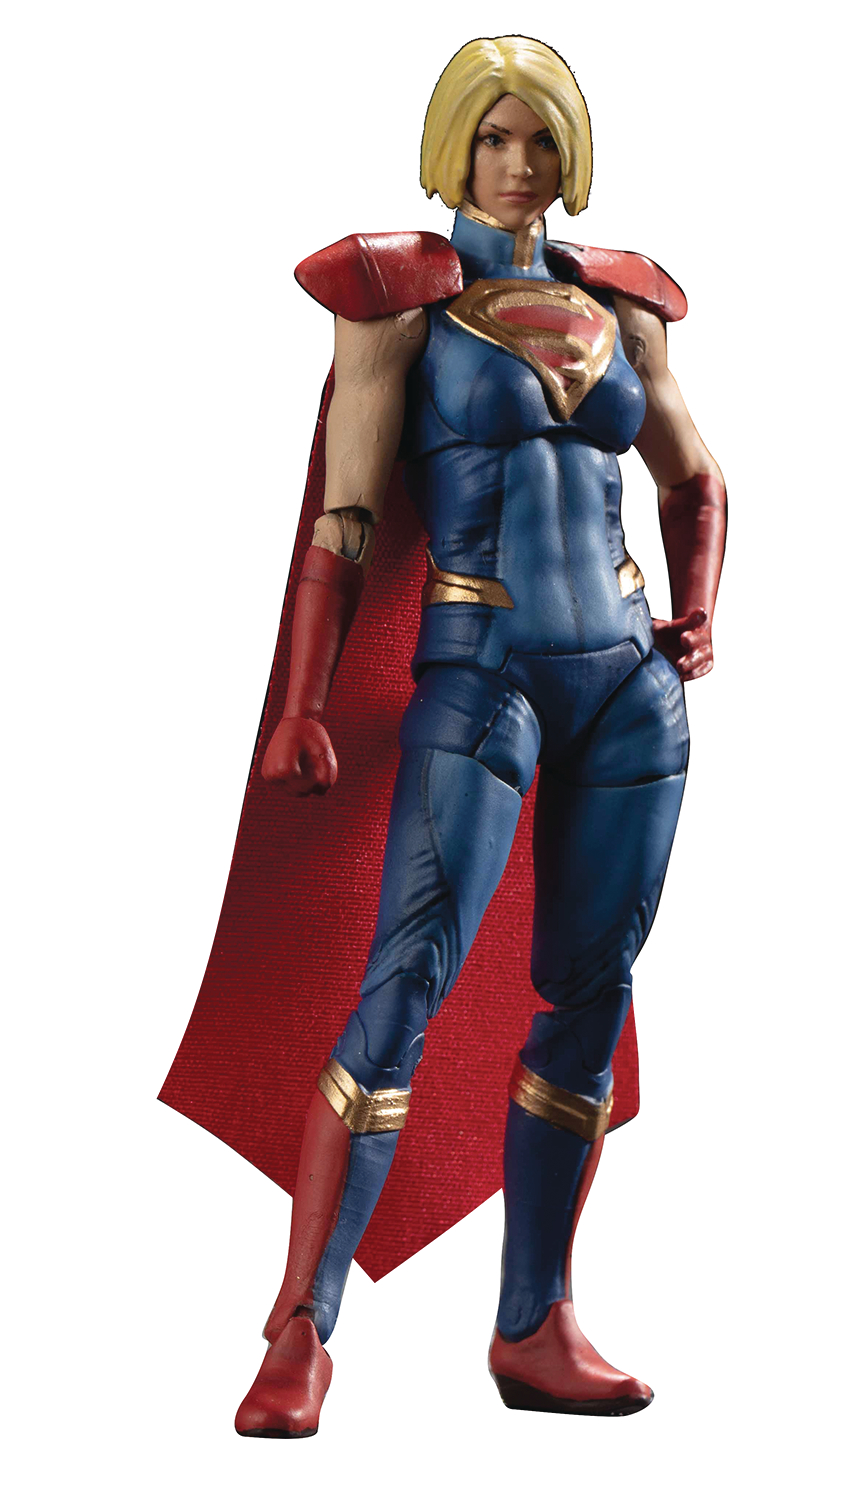 INJUSTICE 2 SUPERGIRL PX 1/18 SCALE FIG